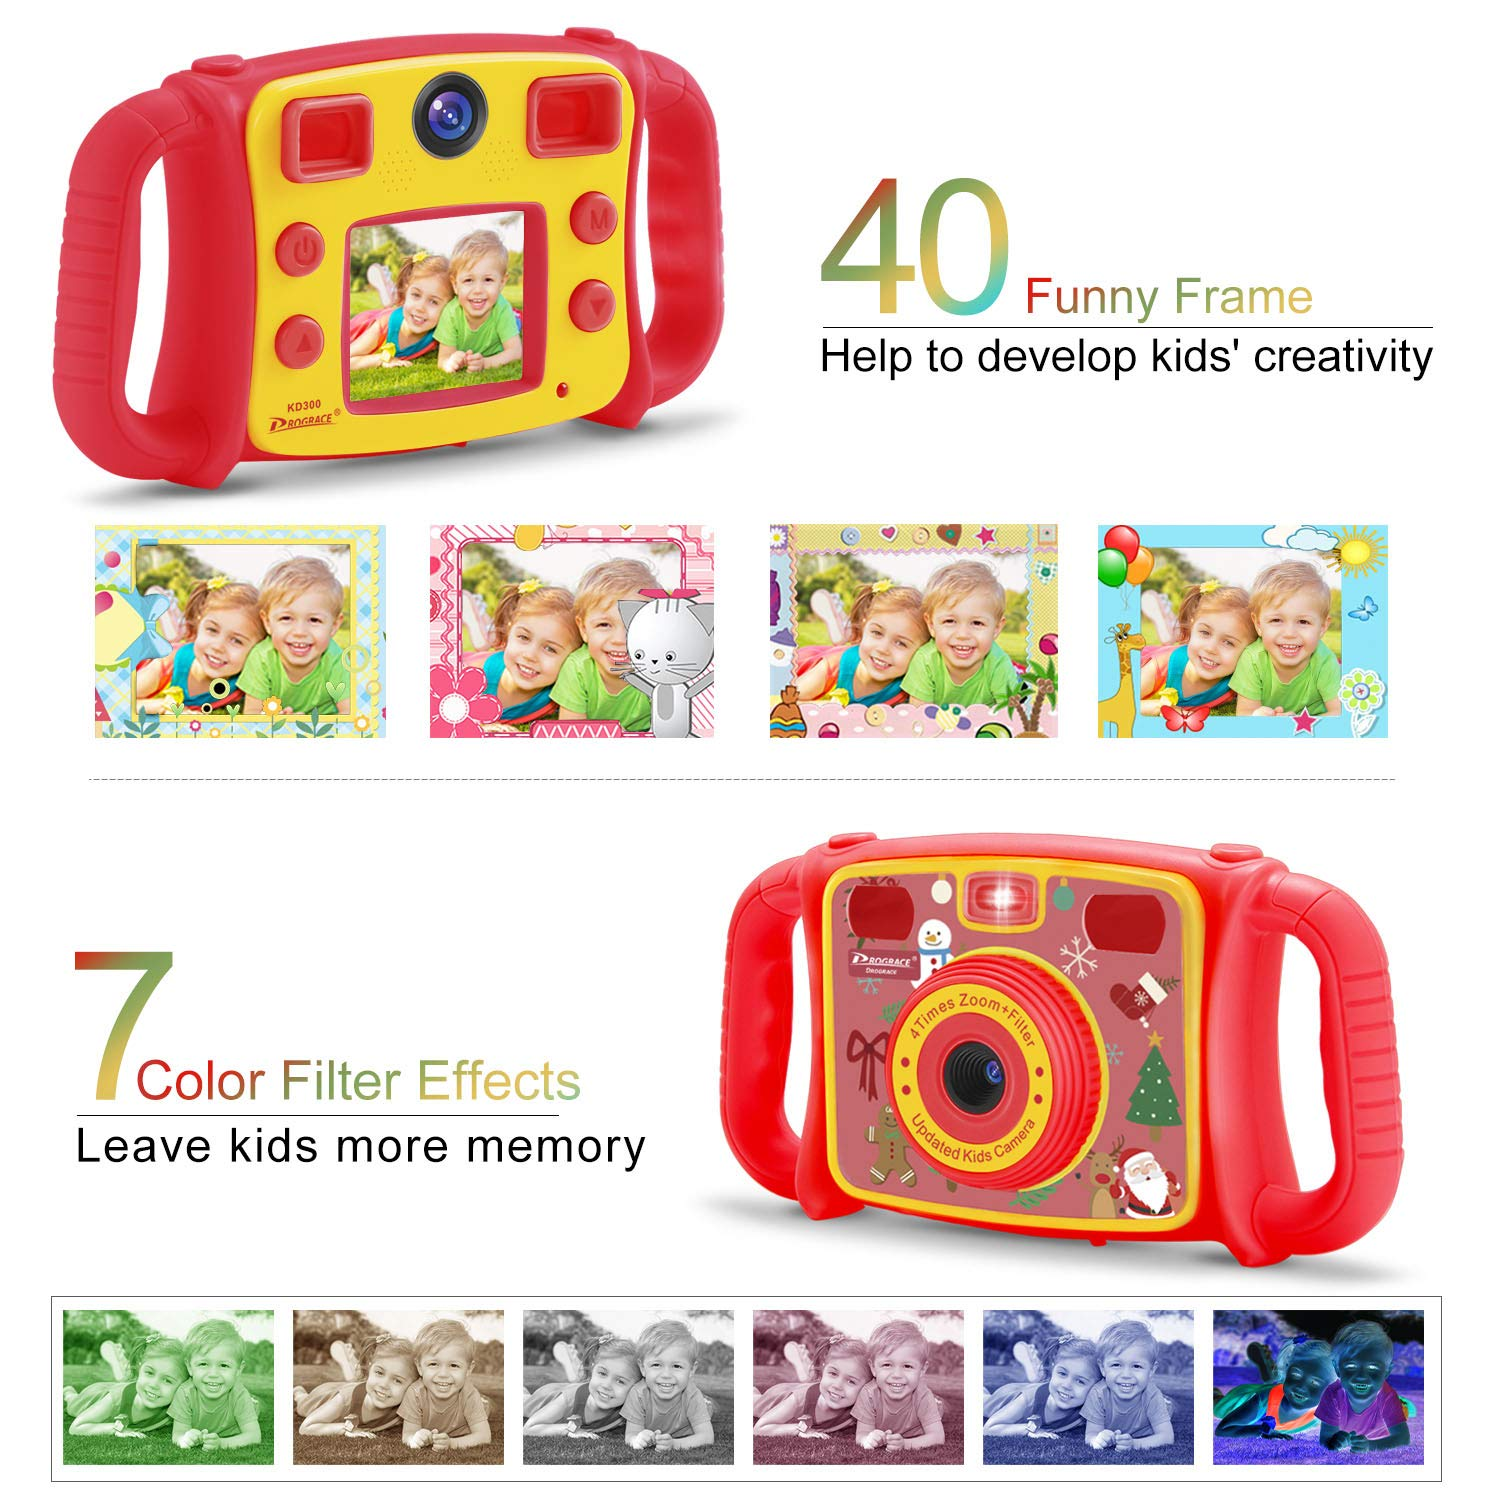 Prograce Kids Camera Dual Camera Selfie Digital Video Camera Camcorder for Boys Girls with 4X Digital Zoom, Flash Light and Funny Game(Red) by Prograce (Image #4)